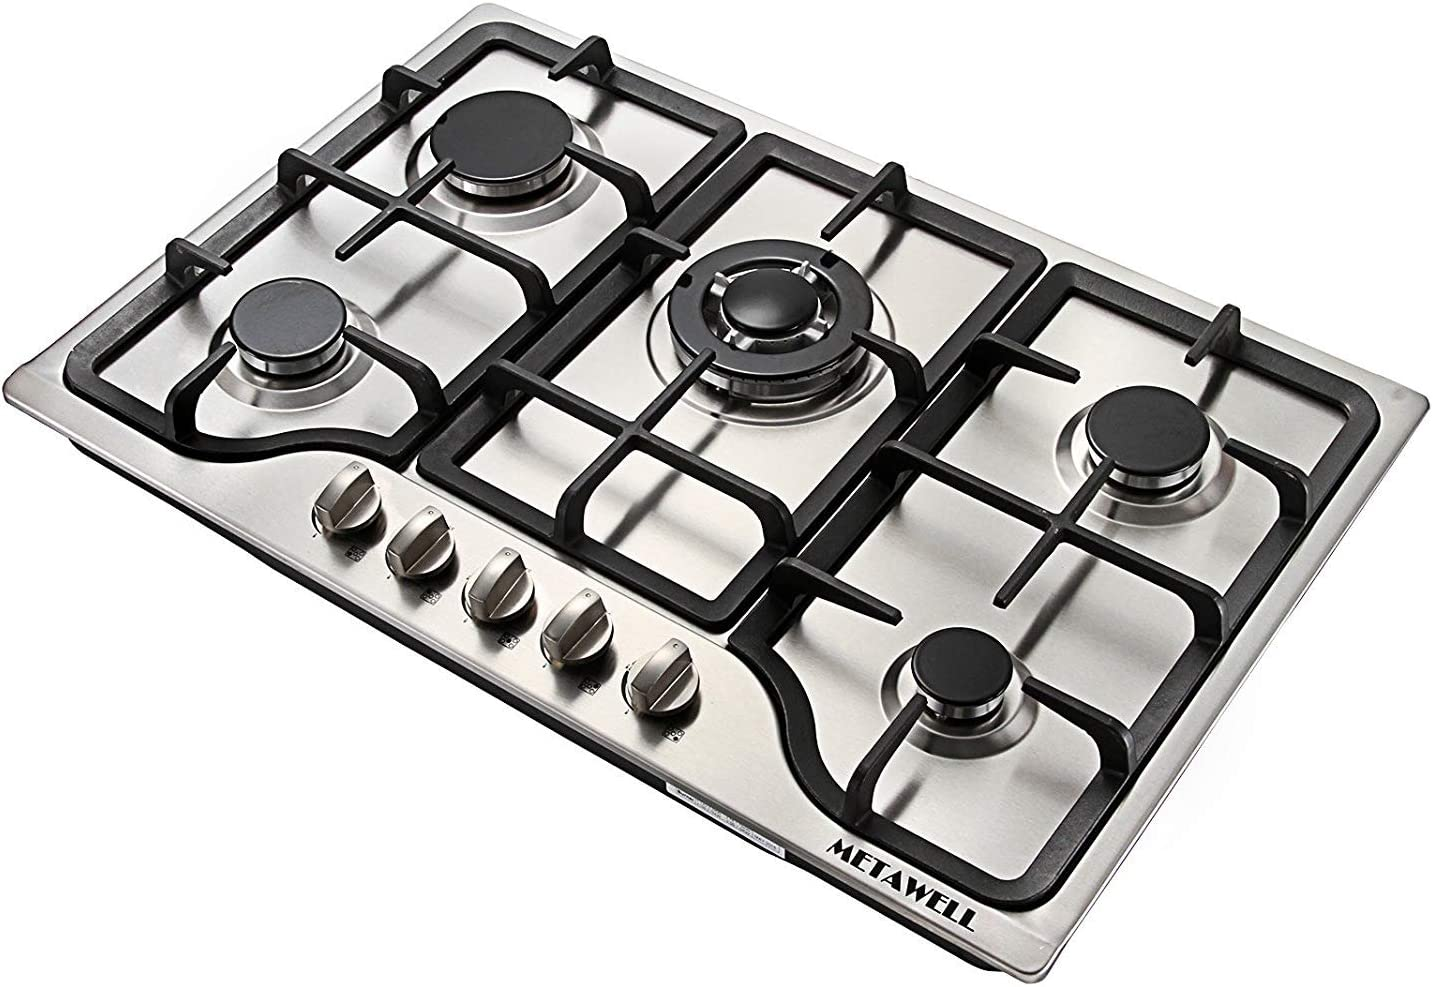 "METAWELL 30"" Stainless Steel 5 Burner Built-in Stoves NG Gas Hob Cooktops Cooker"